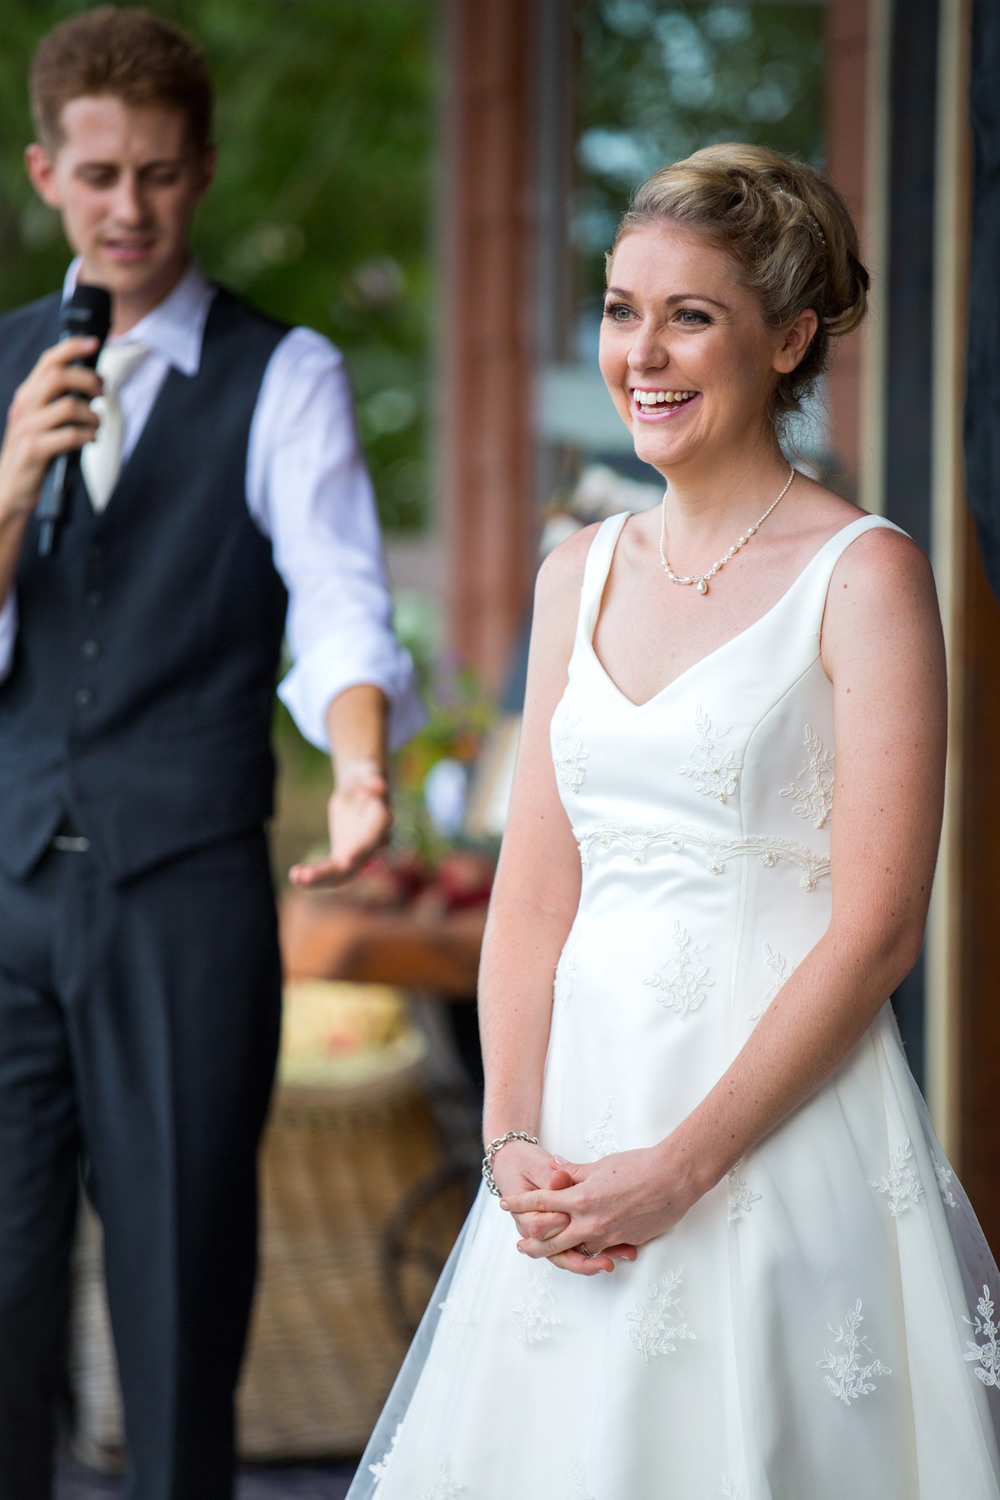 1-sunshine-coast-wedding-photography-all-the-love-in-the-world-noosa-mooloolaba-glasshouse-brisbane-katie-ryan5556.jpg